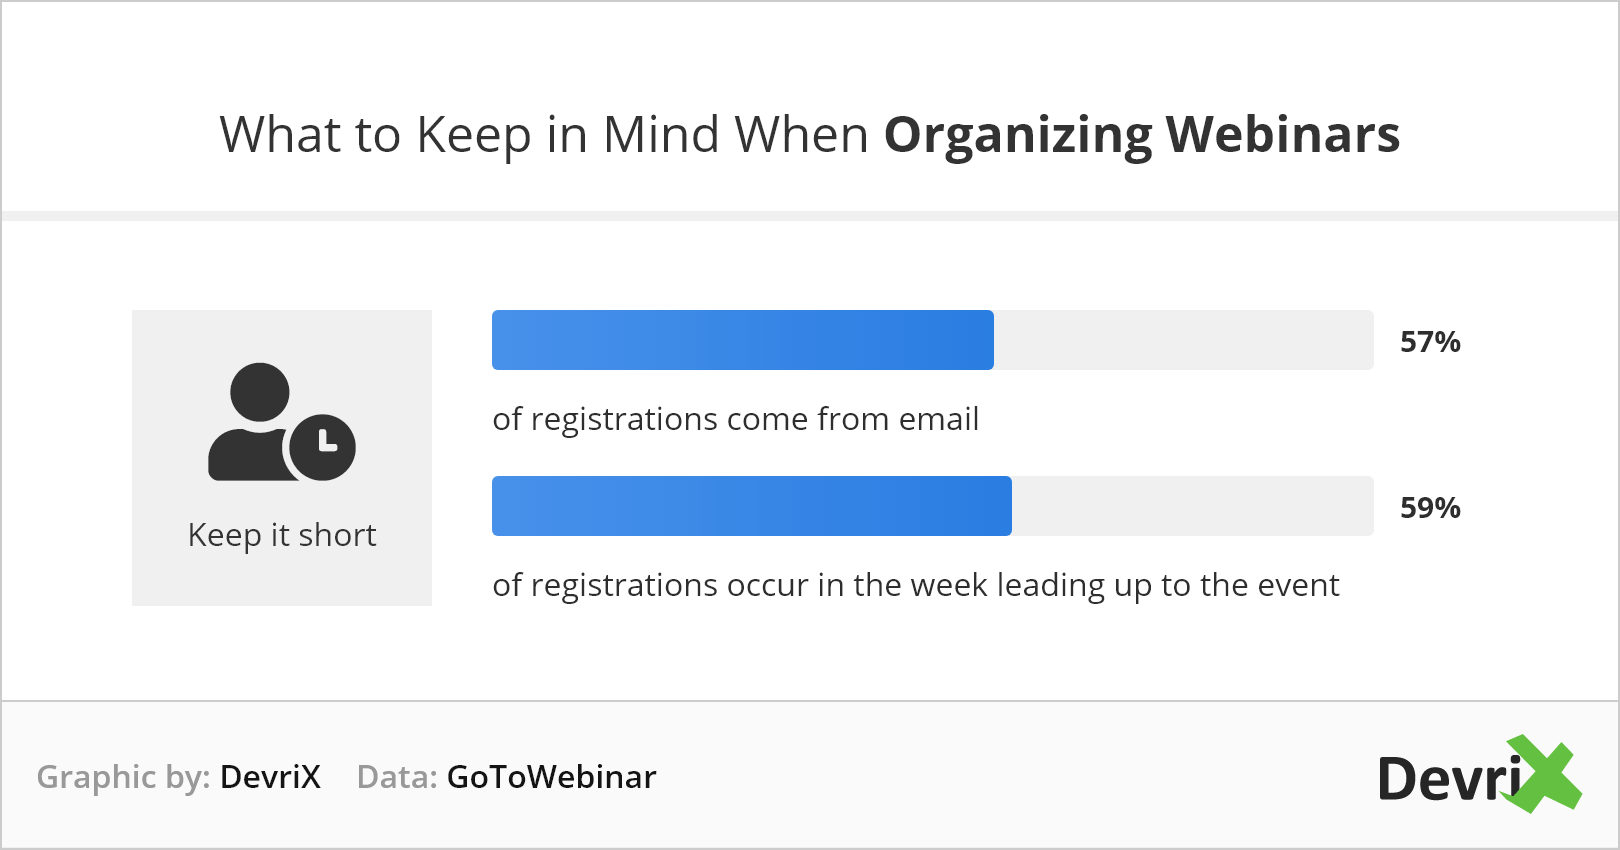 What to keep in mind when organizing webinars